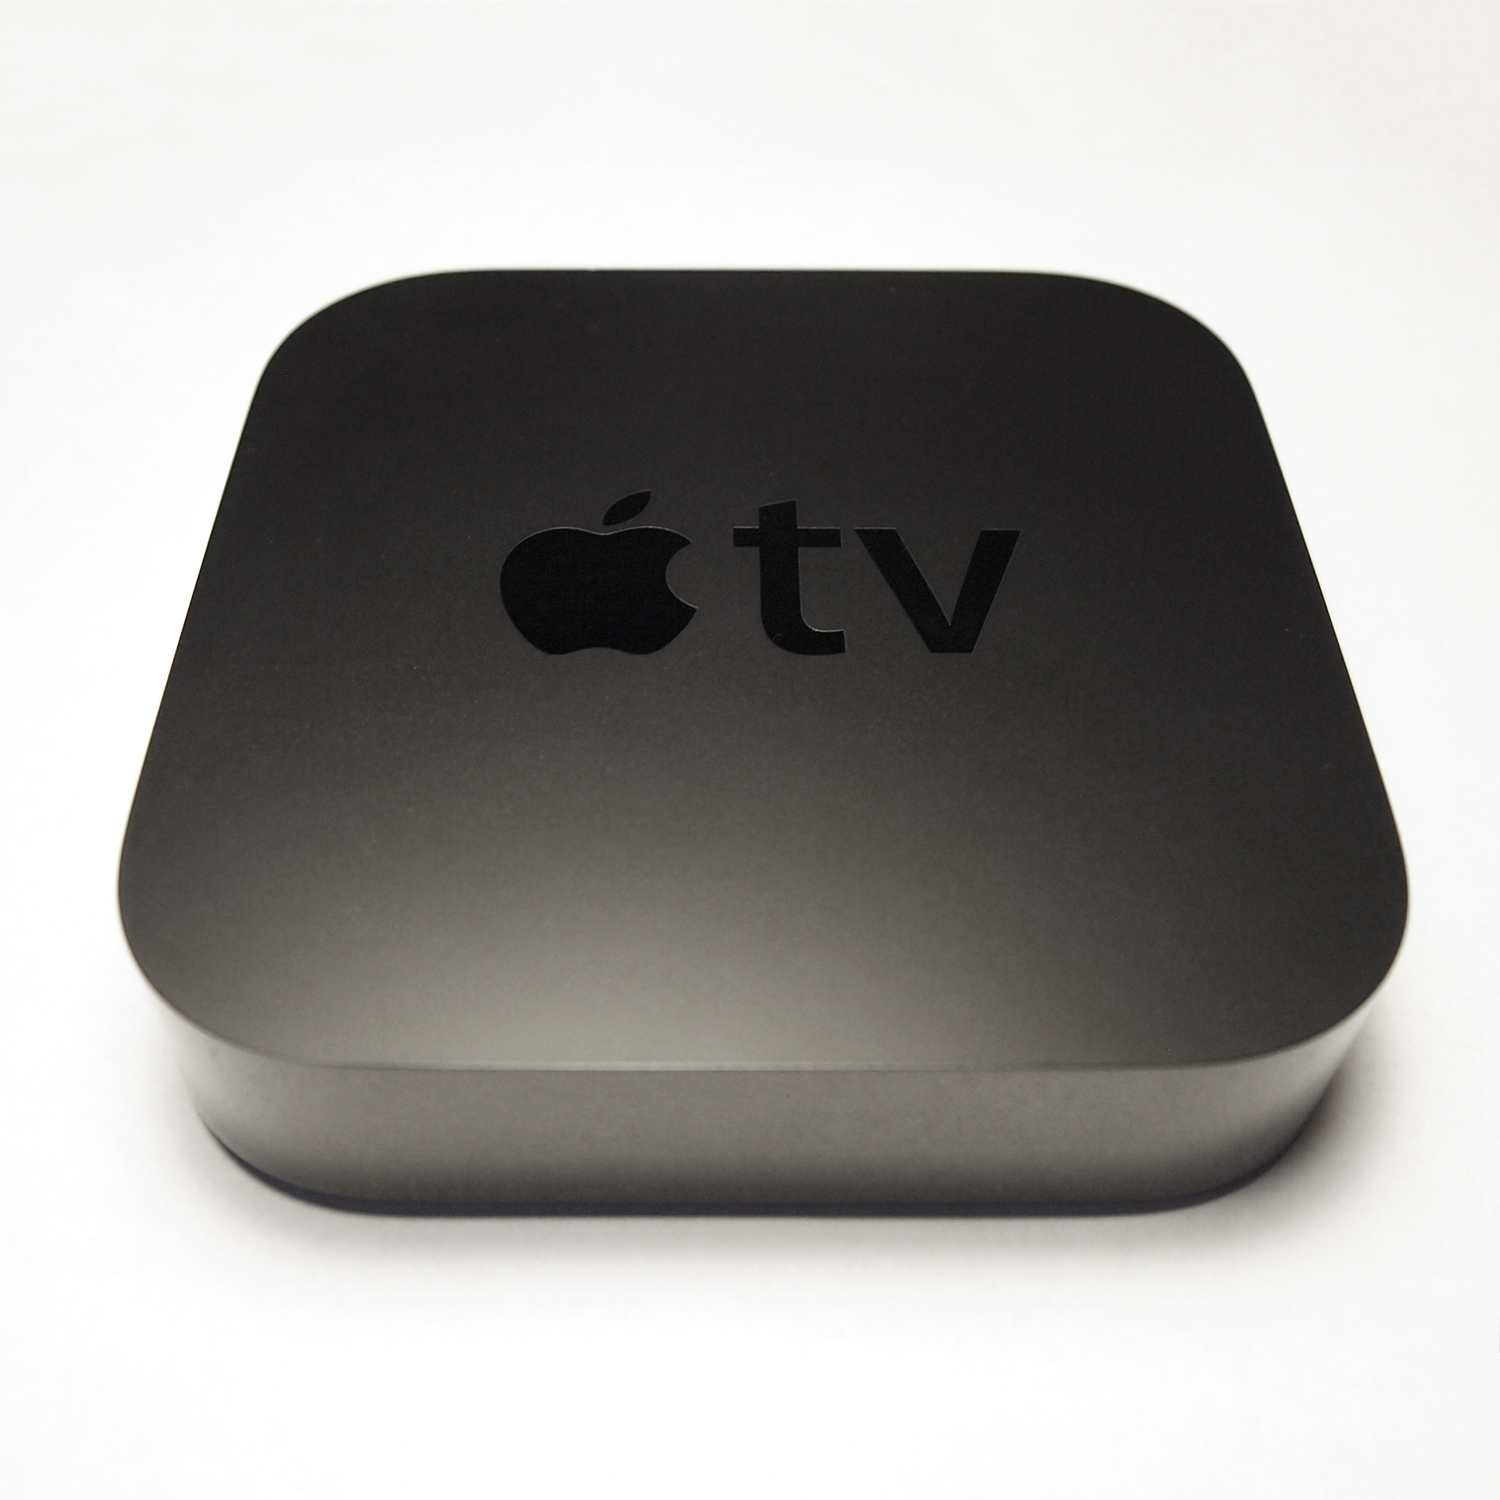 Apple TV 2nd Generation.jpg